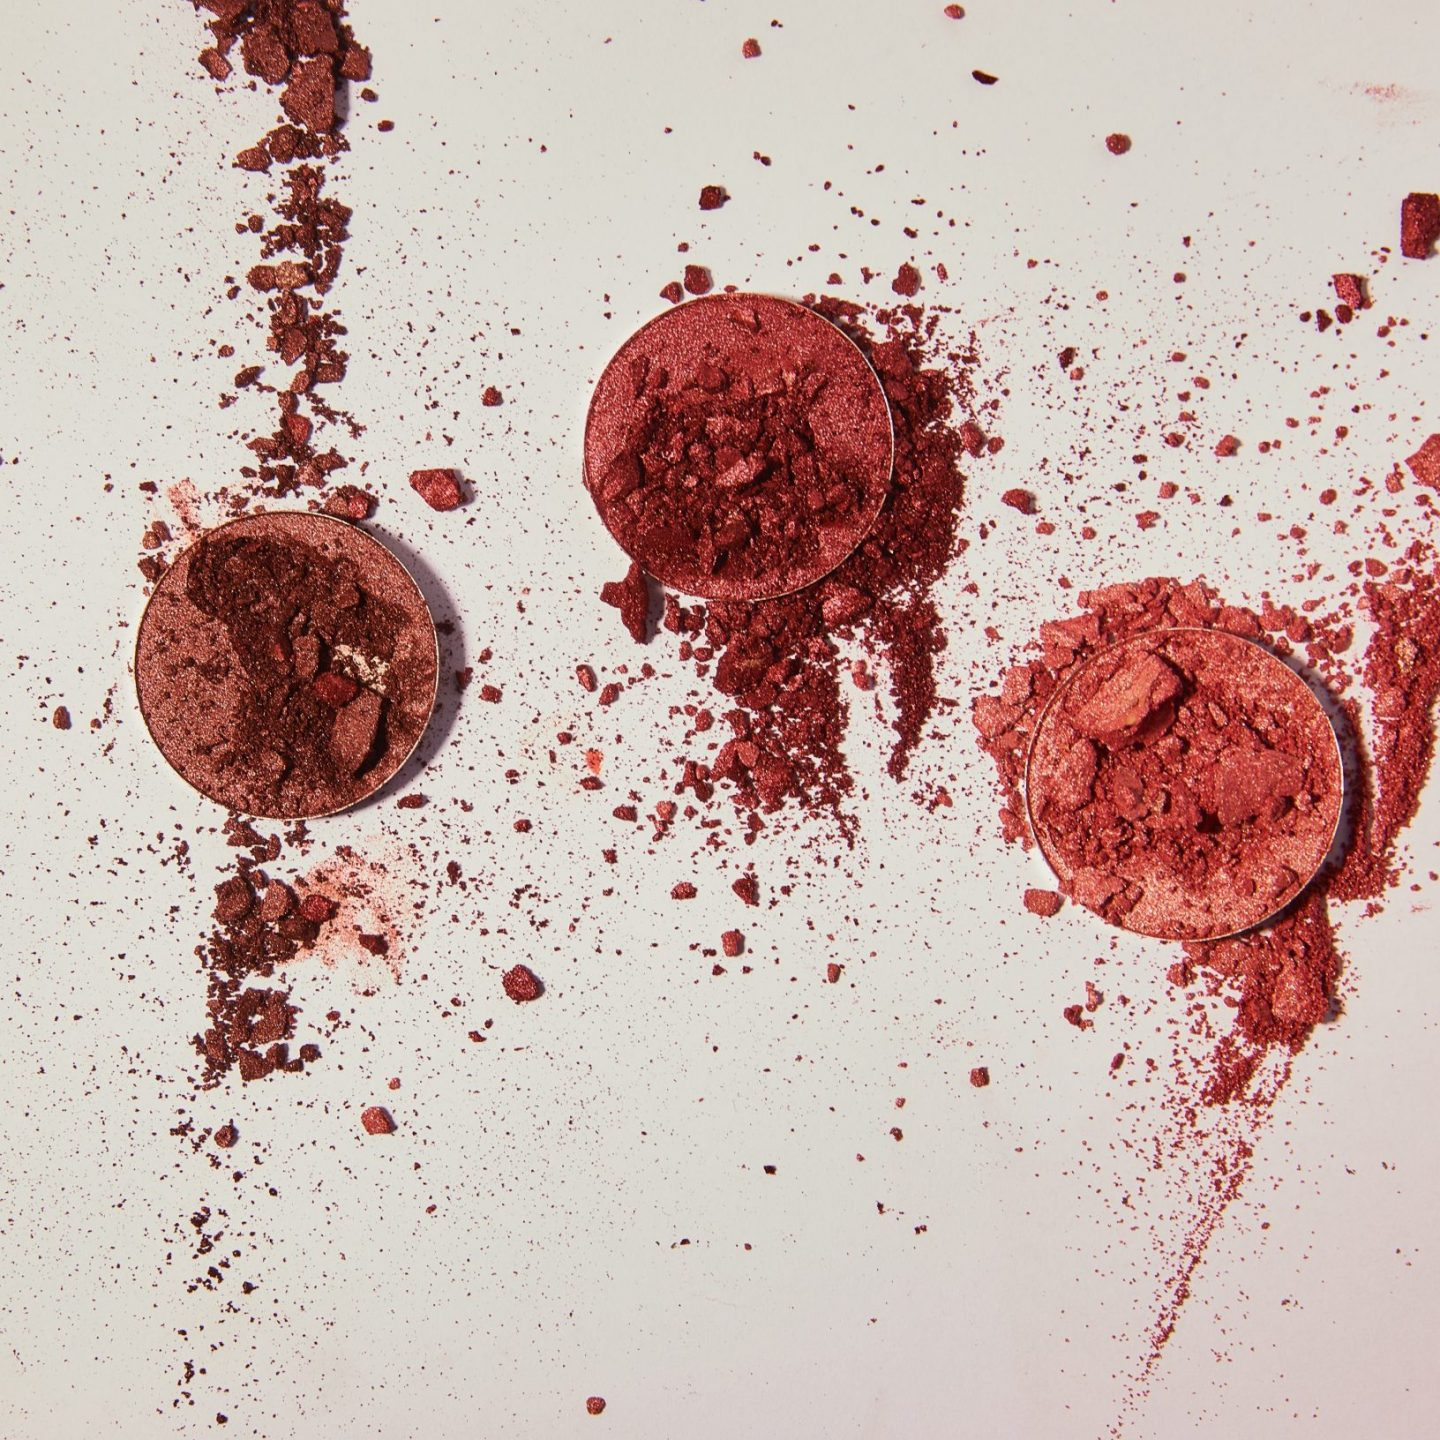 How to Sustainably Dispose of Old Makeup and Cosmetics